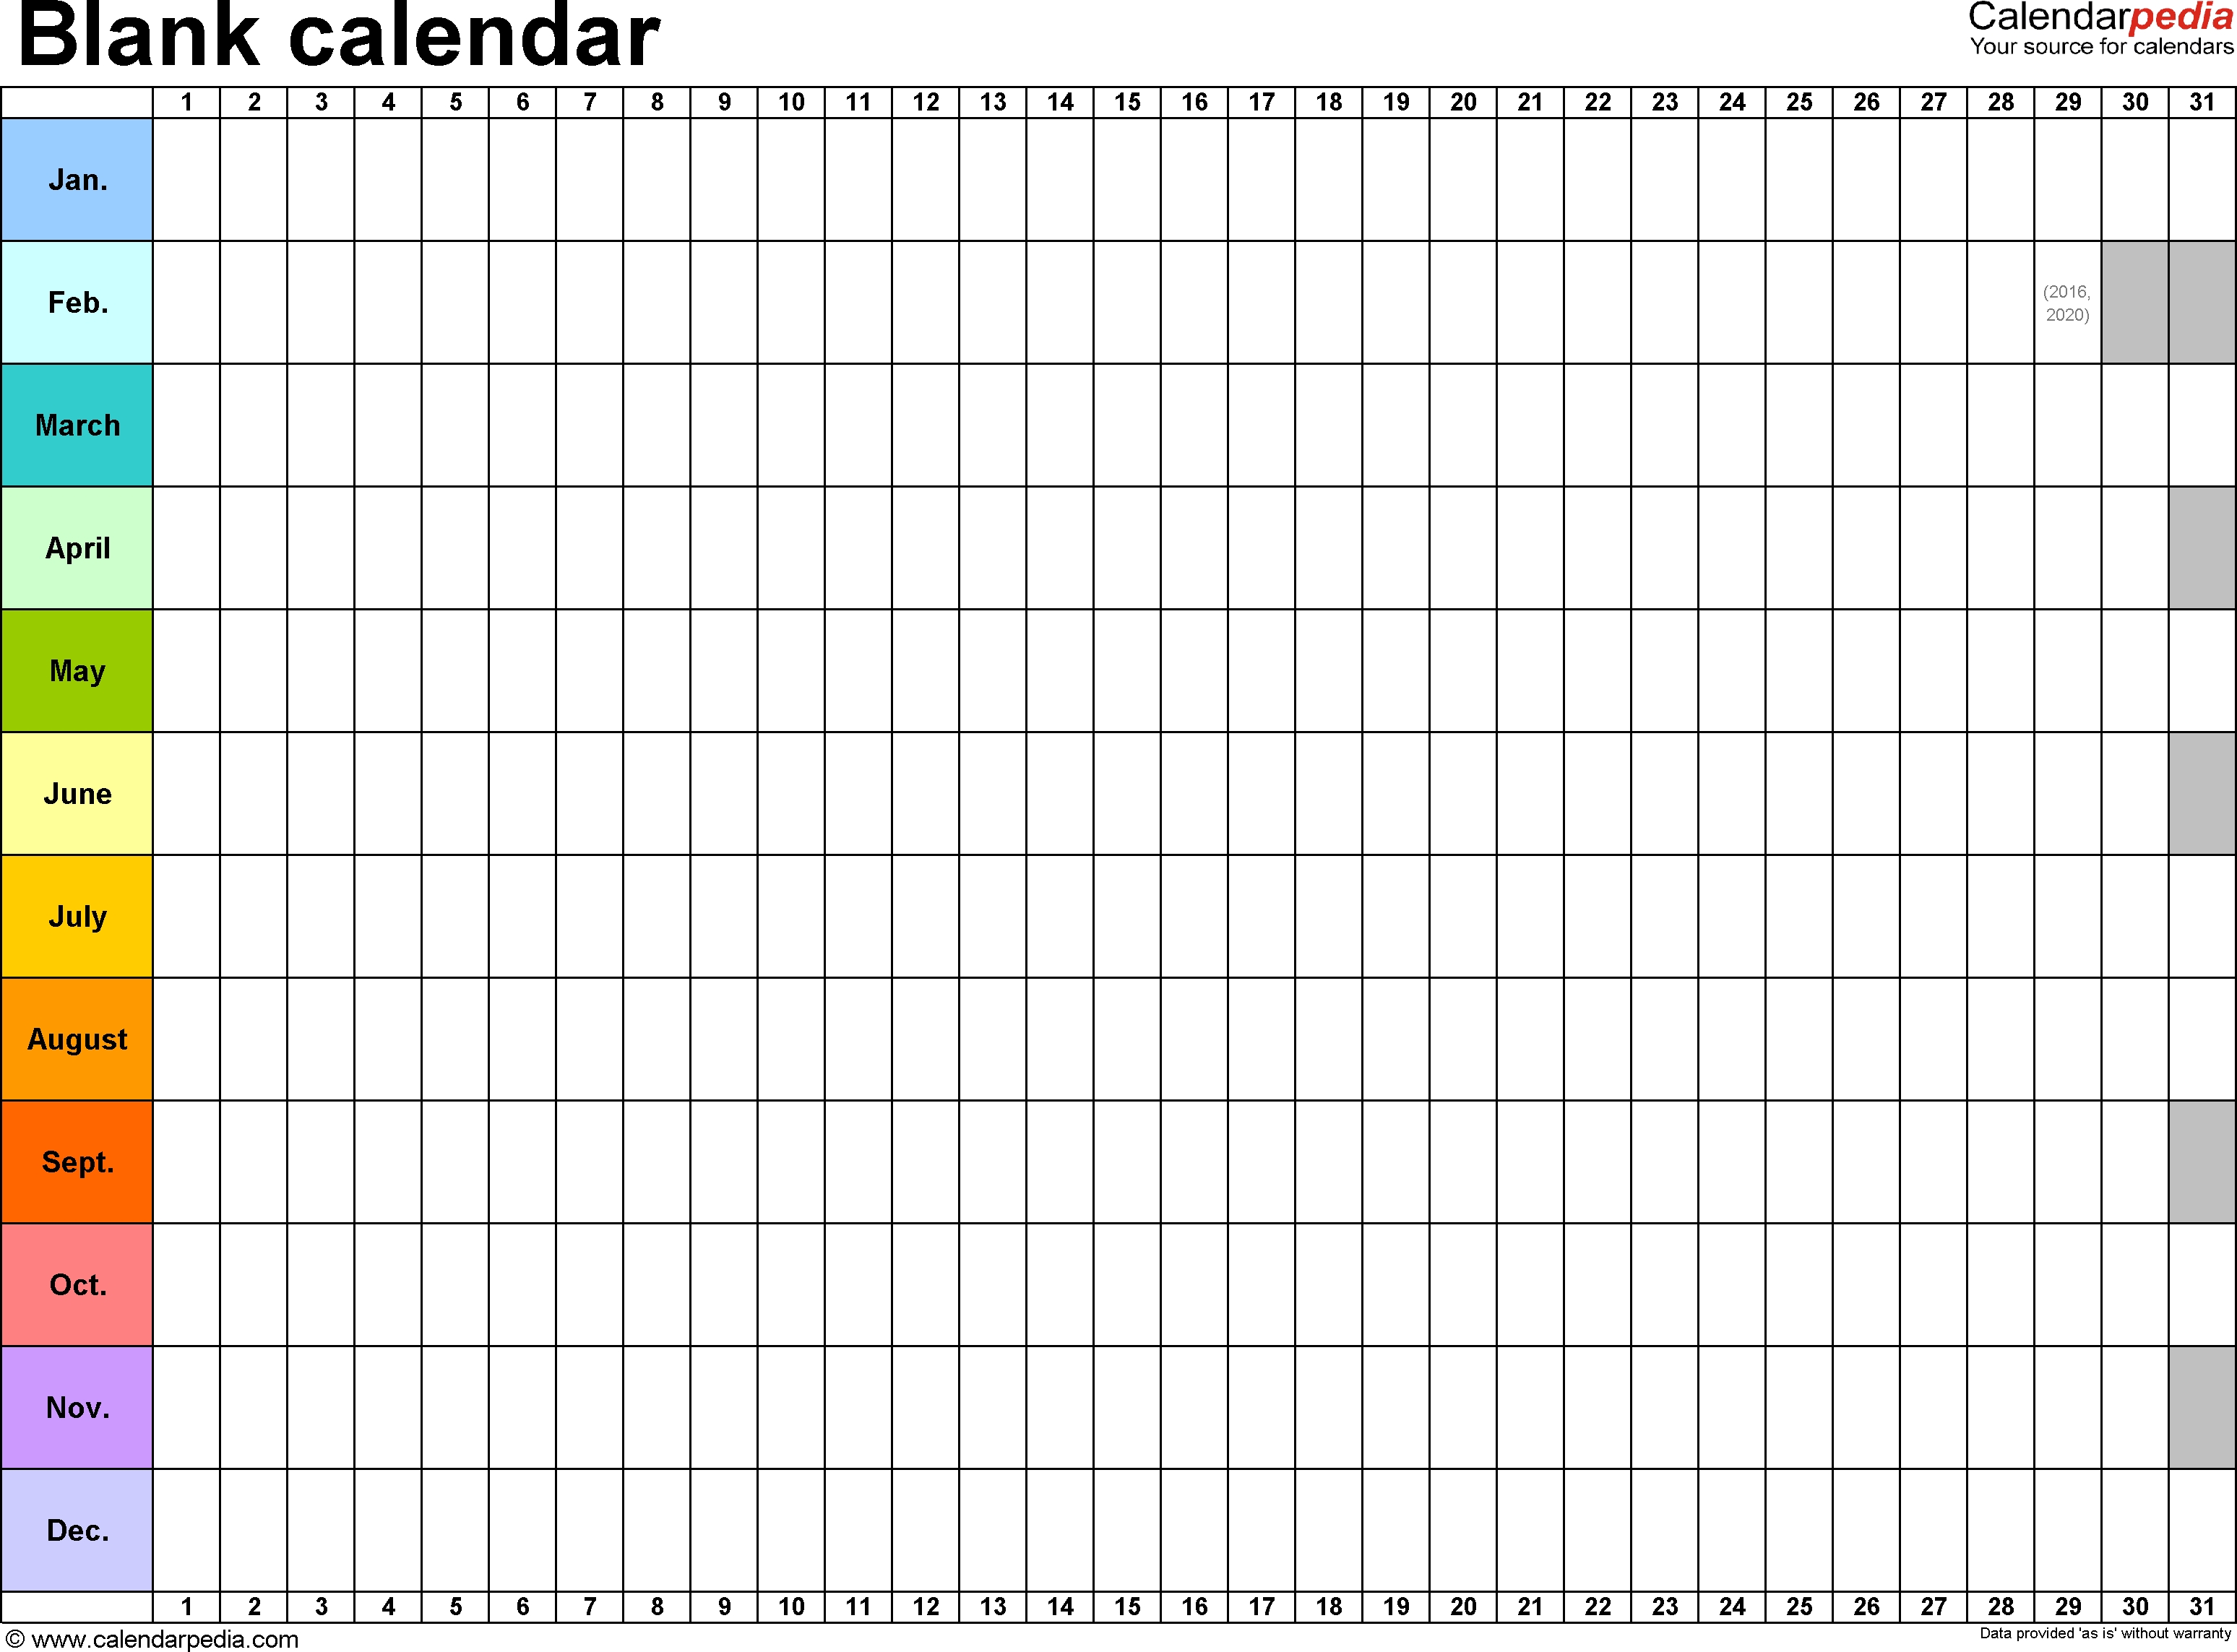 Printable Monthly Blank Calendar with Blank Monthly Calendar Printable With Lines